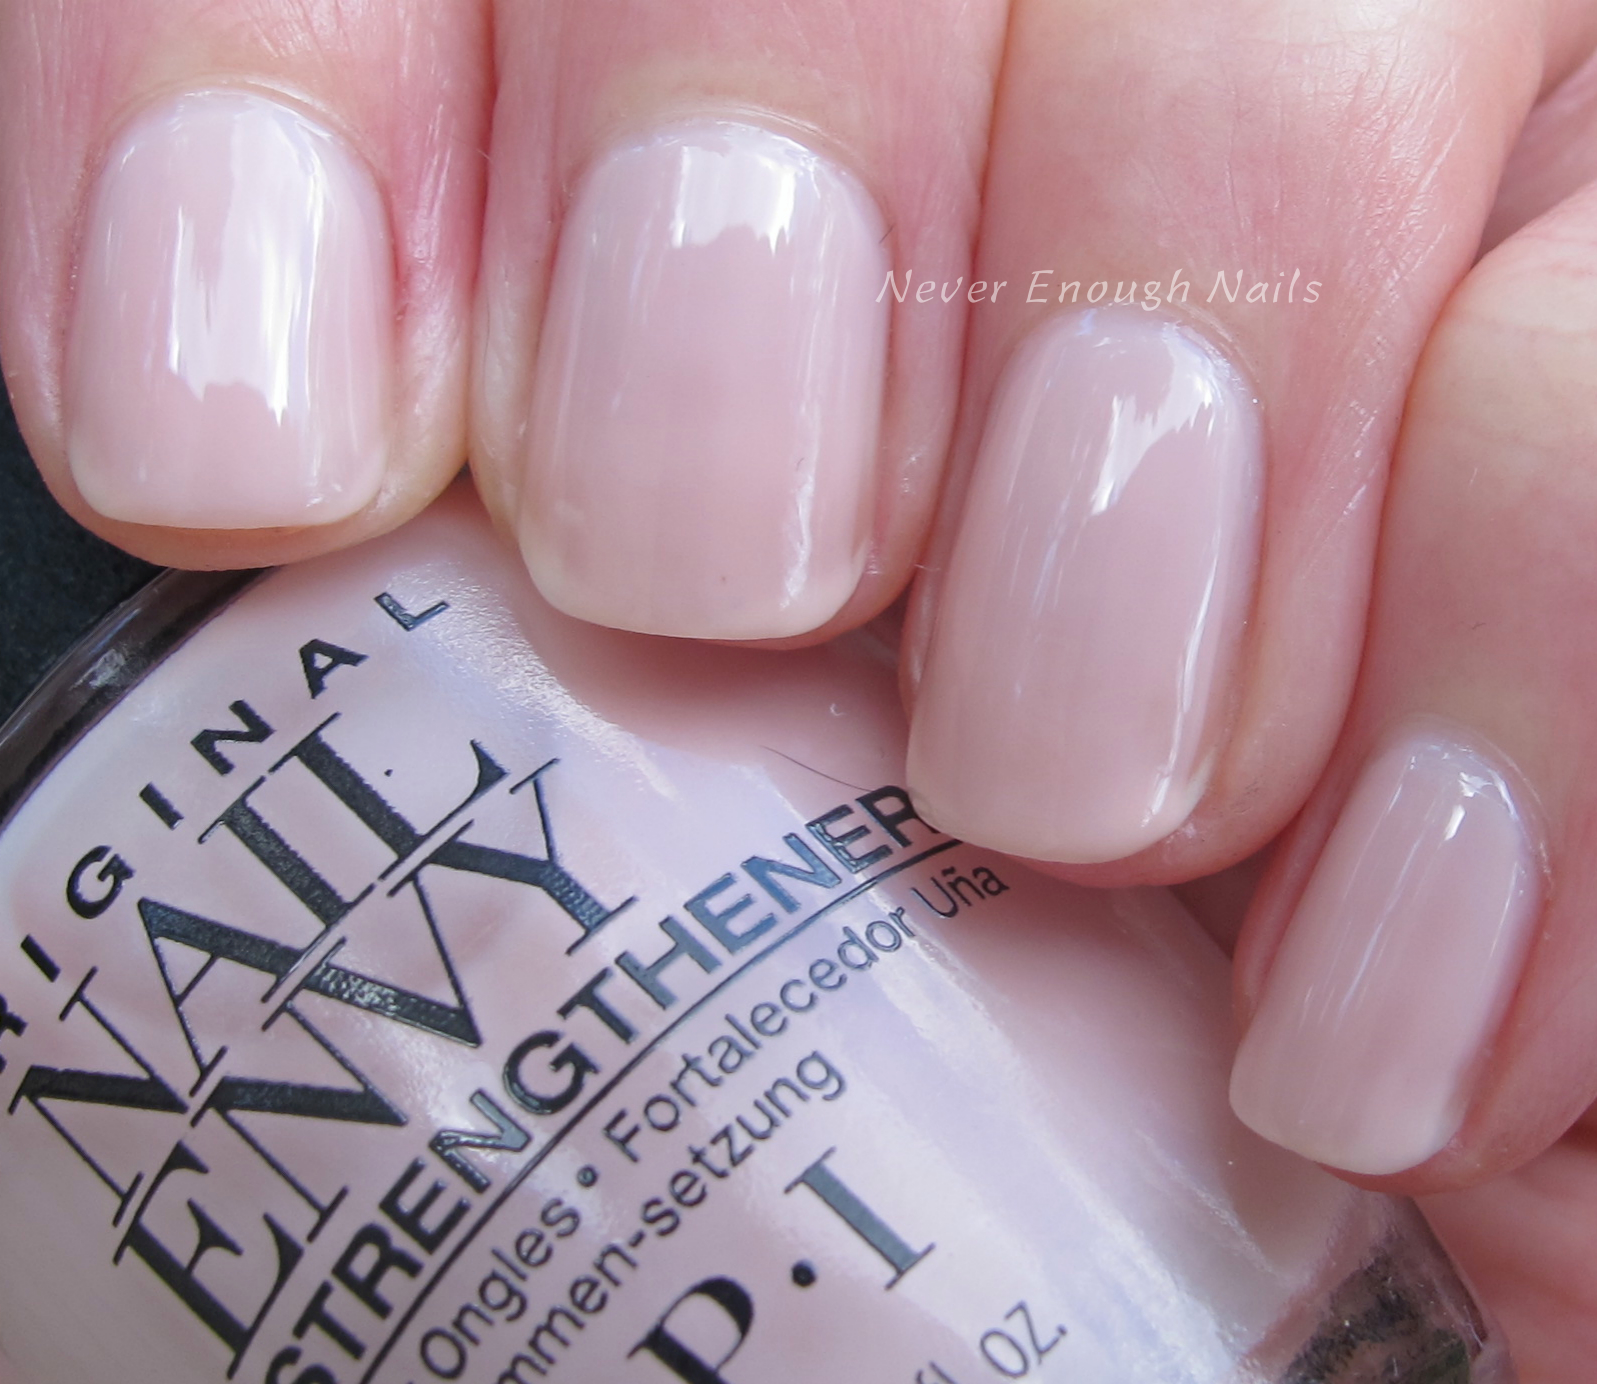 Never Enough Nails: OPI Nail Envy Strength + Color Swatches!